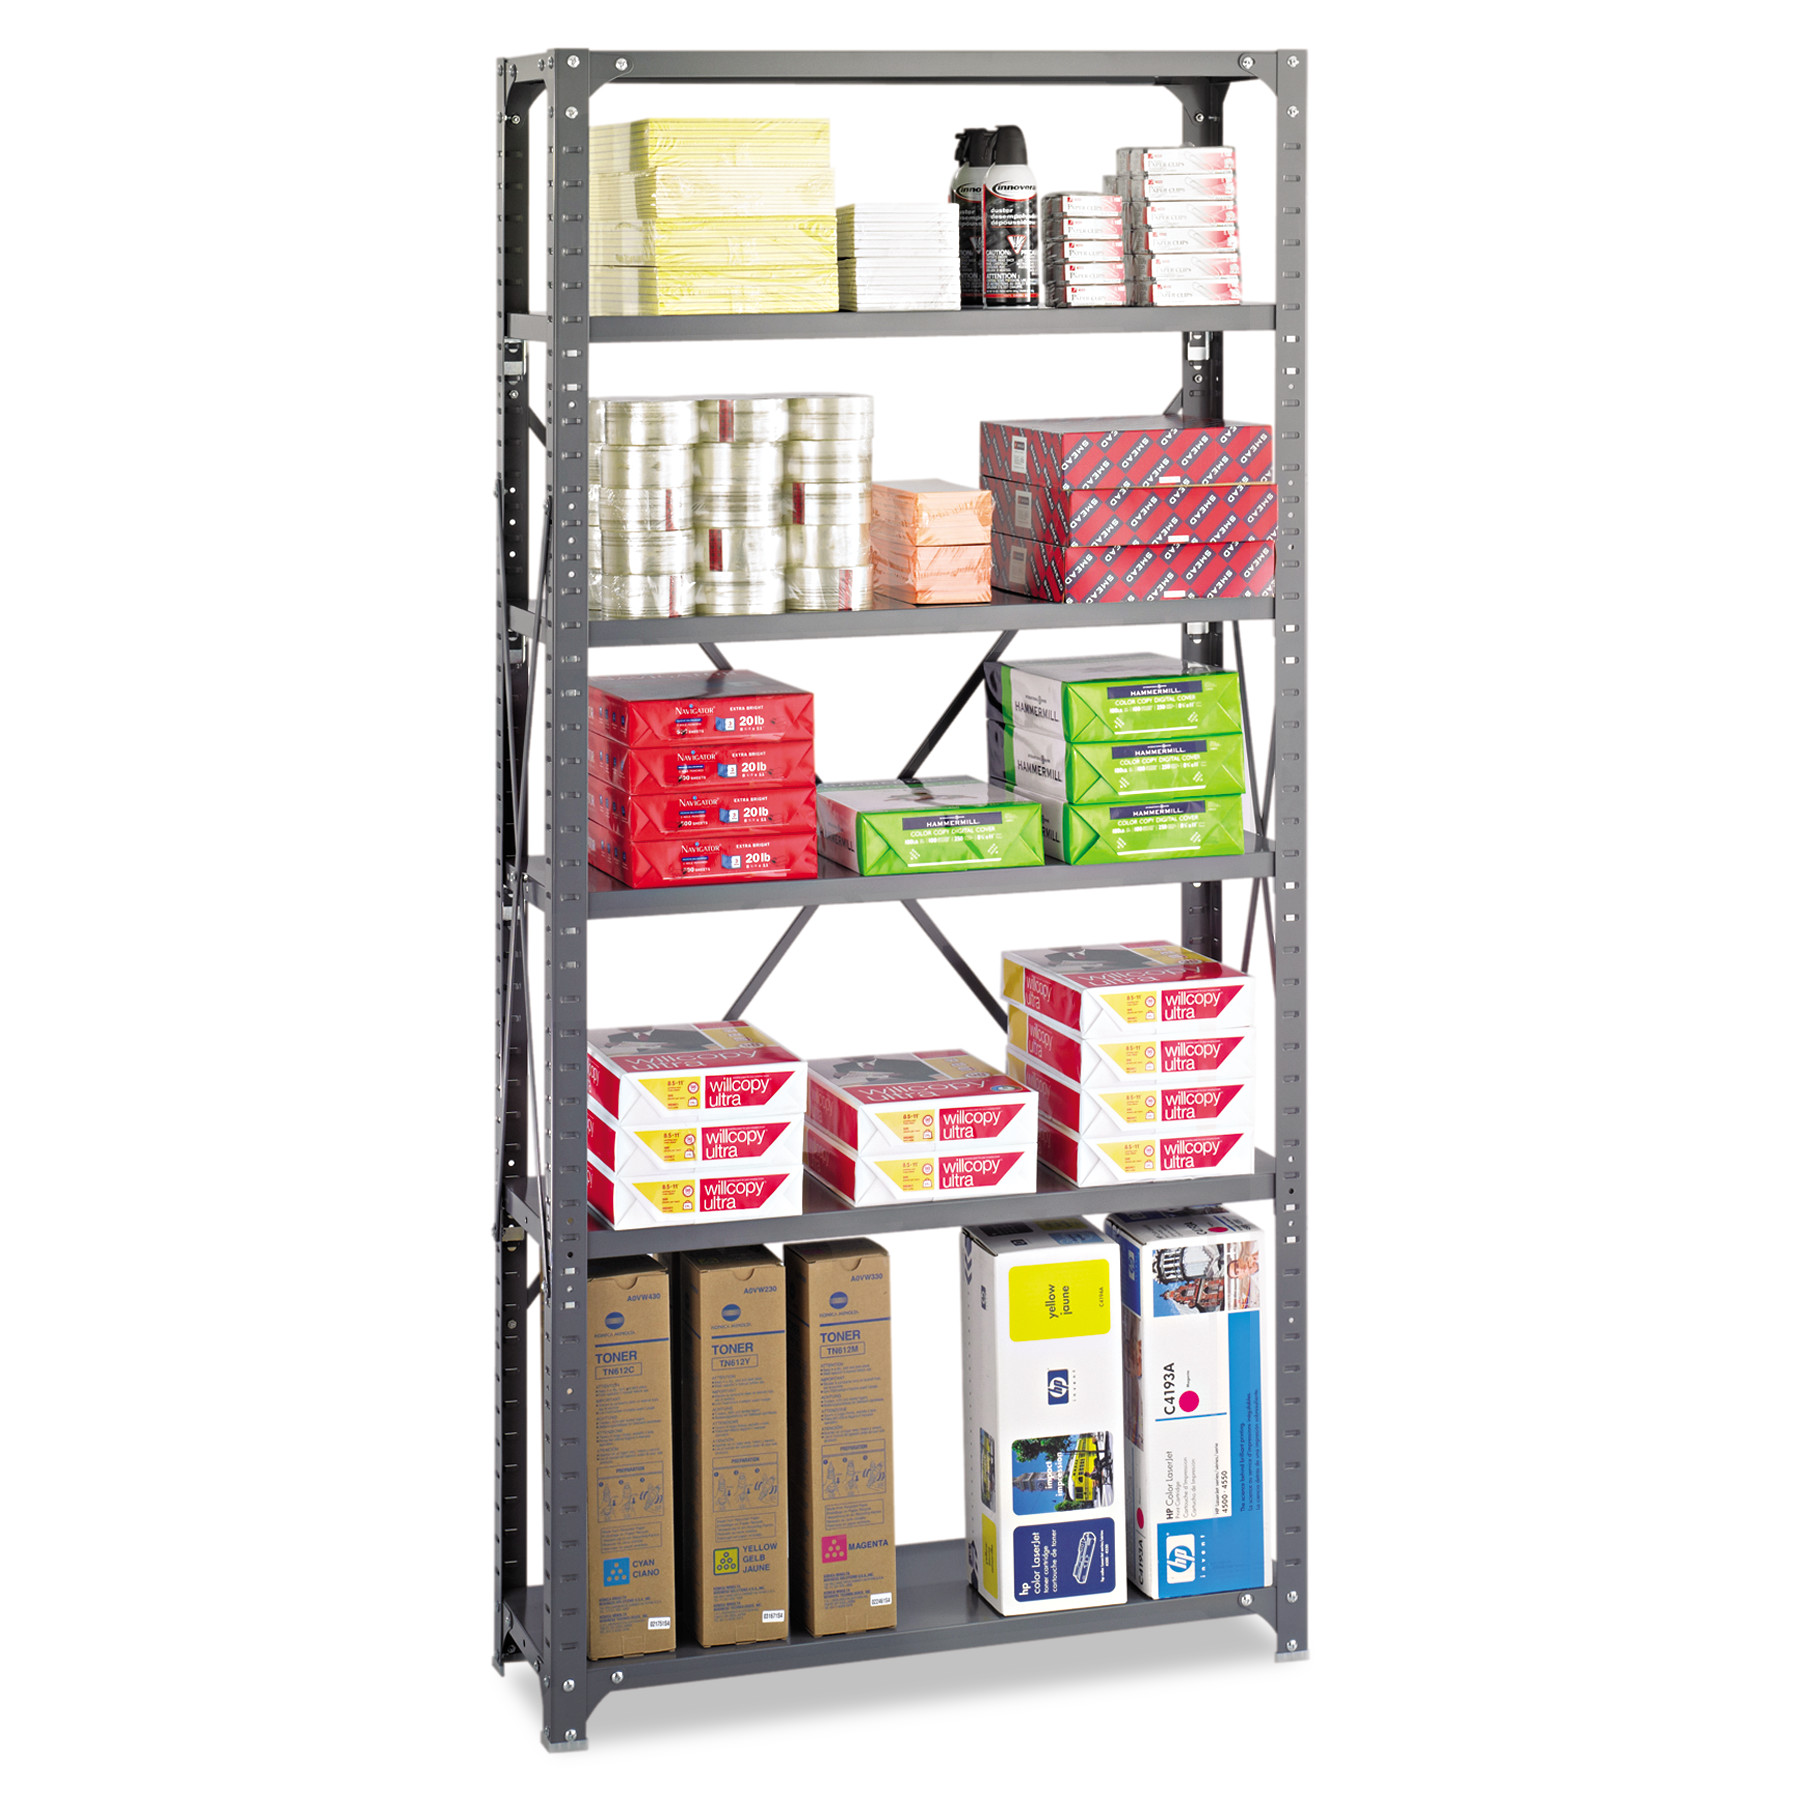 Safco Commercial Steel Shelving Unit, Six-Shelf, 36w x 12d x 75h, Dark Gray